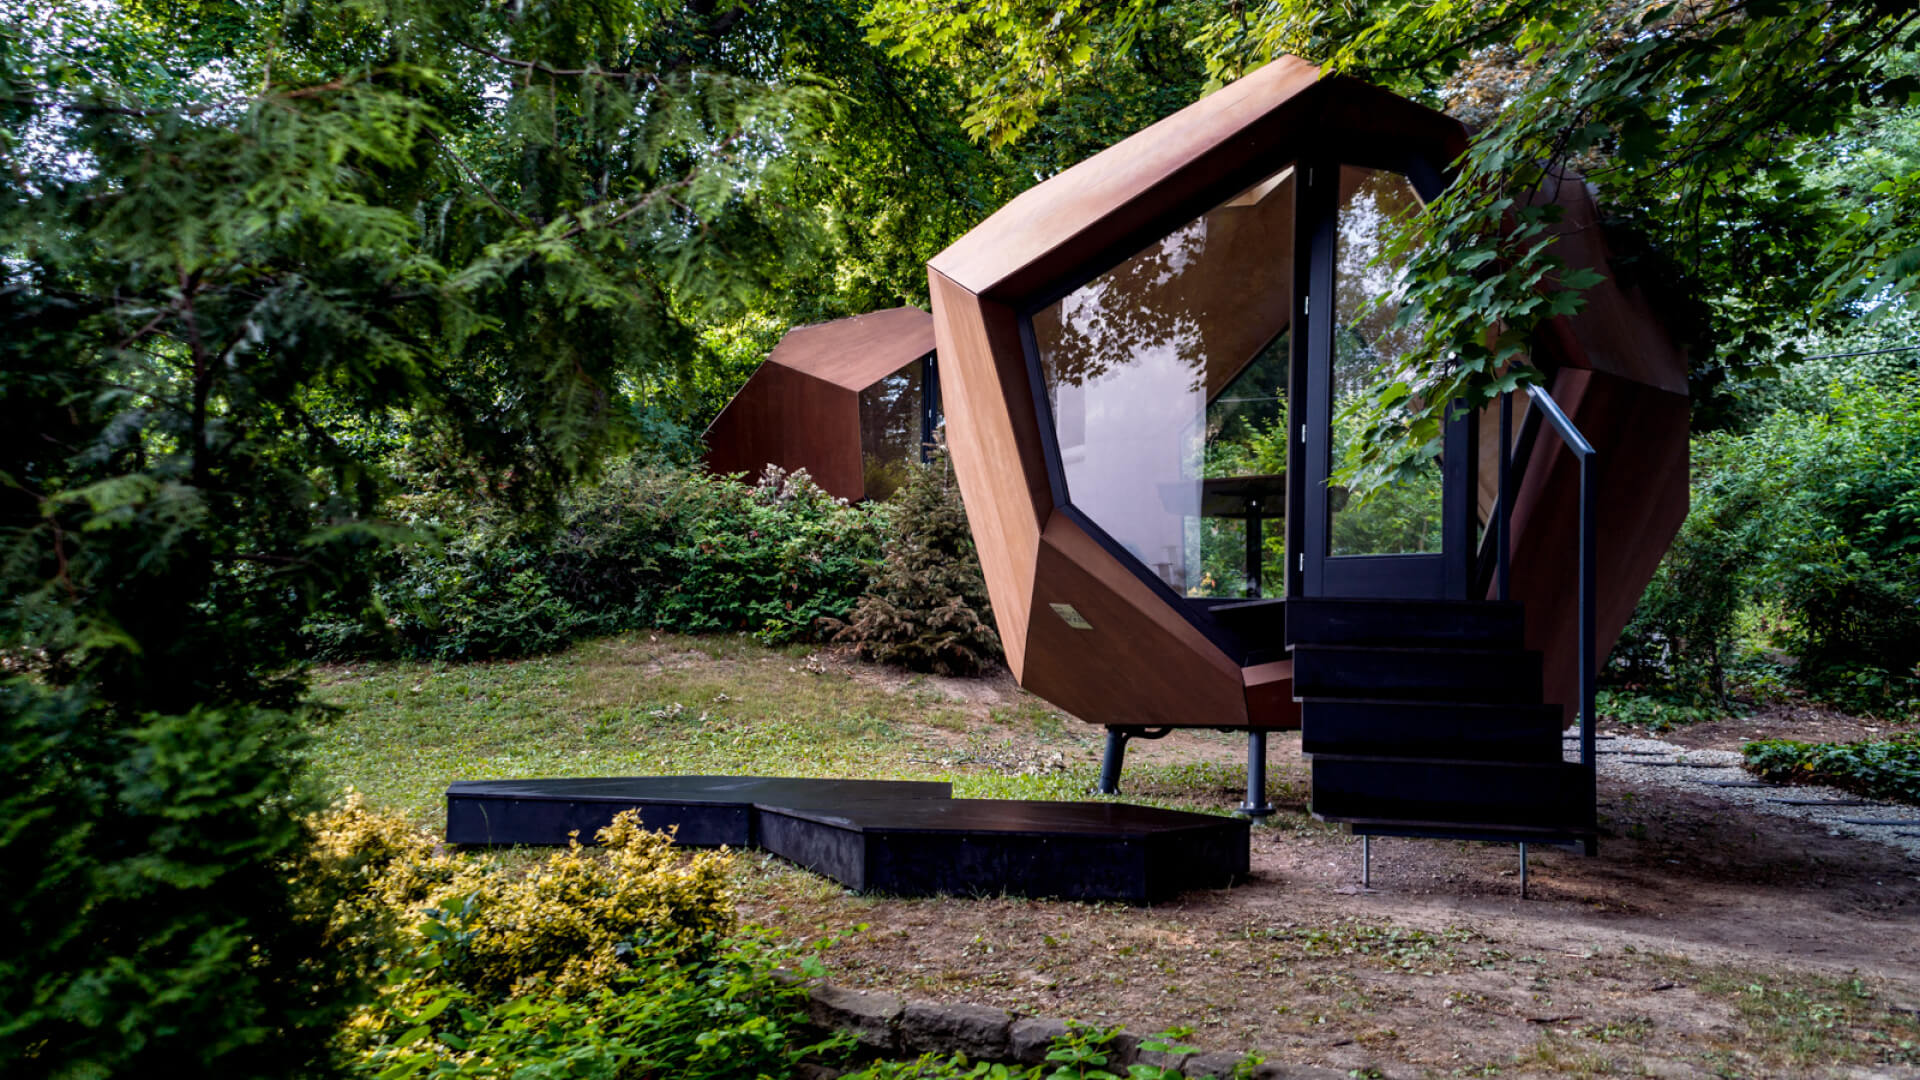 Workstation Cabin designed by Hello Wood for installation in outdoor environments | Workstation cabin| Hello Wood| STIRworld